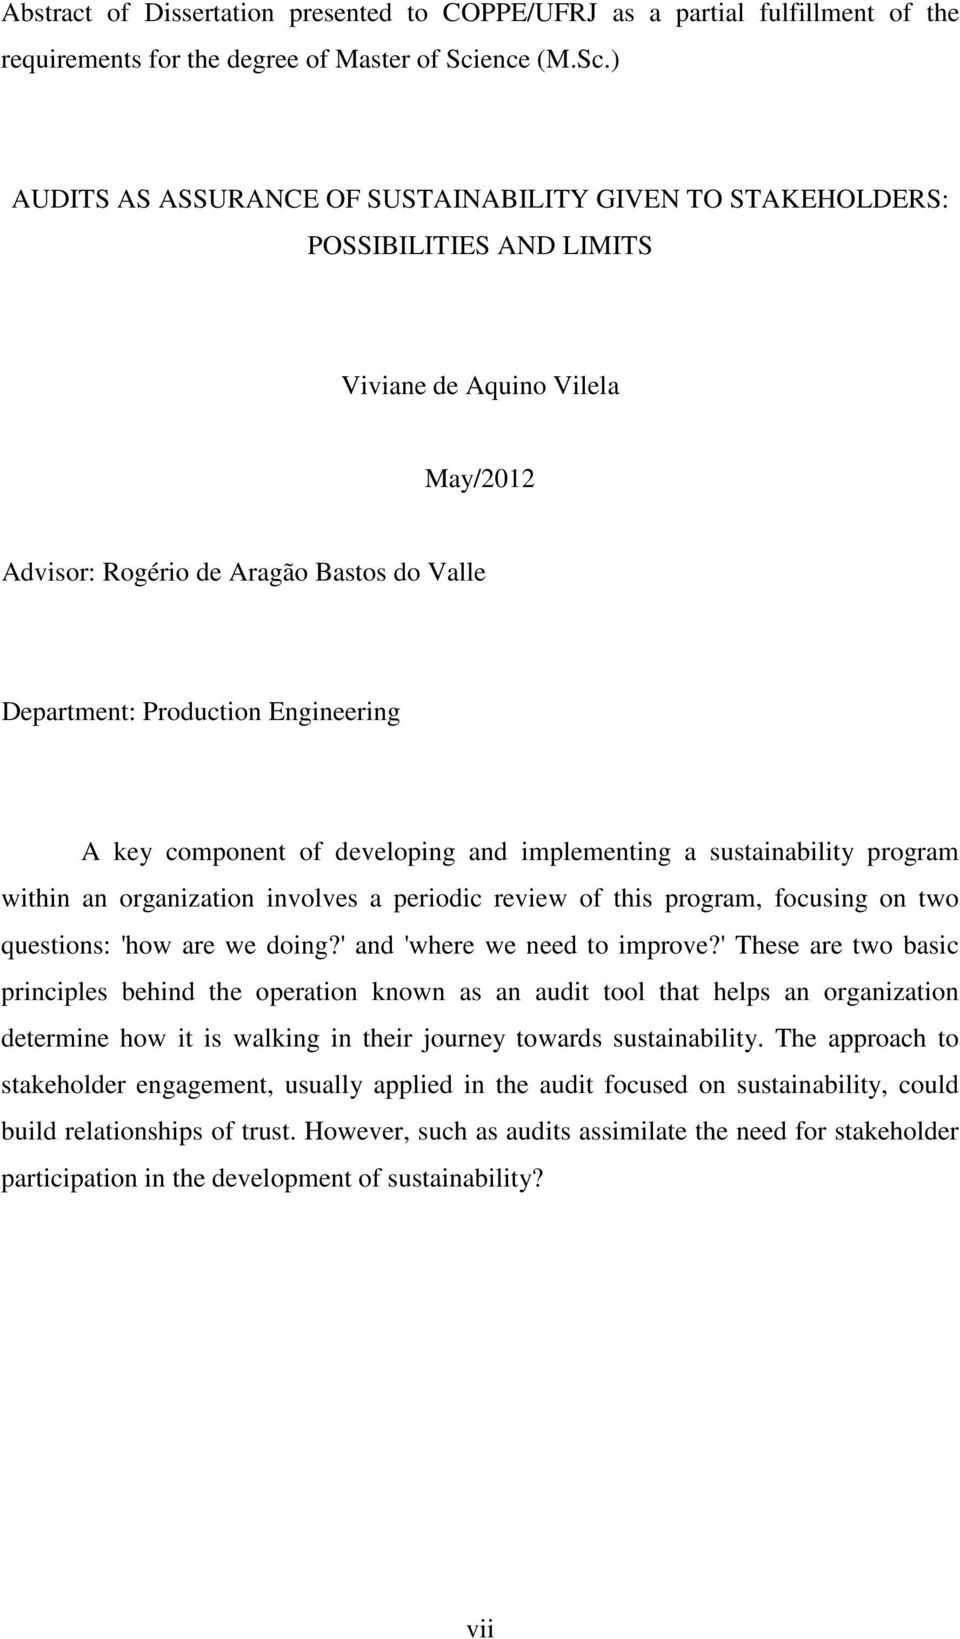 ) AUDITS AS ASSURANCE OF SUSTAINABILITY GIVEN TO STAKEHOLDERS: POSSIBILITIES AND LIMITS Viviane de Aquino Vilela May/2012 Advisor: Rogério de Aragão Bastos do Valle Department: Production Engineering